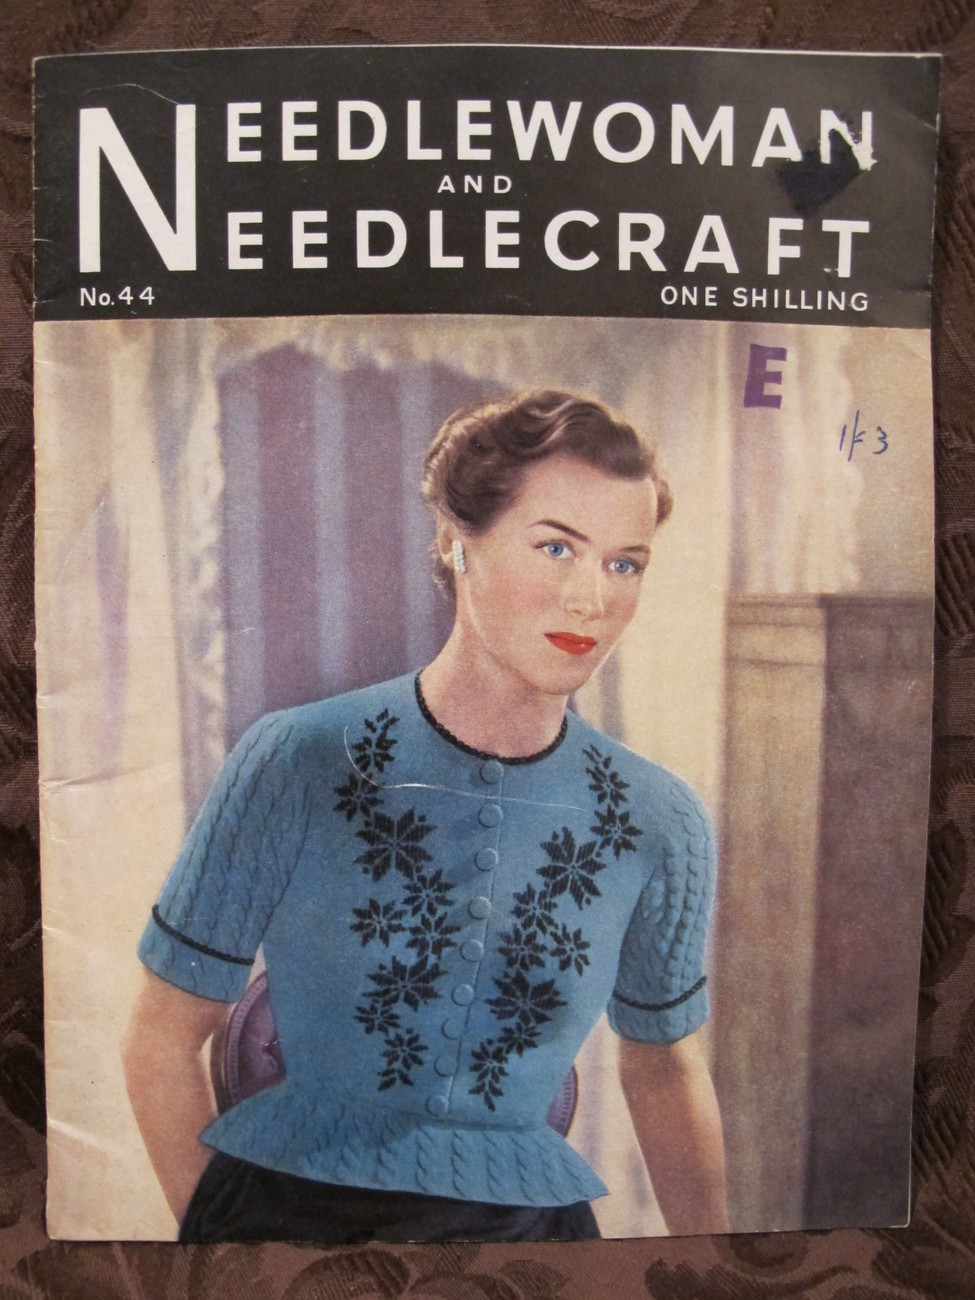 Vintage Needlewoman and Needlecraft Patterns Embroidery Crochet Knitting